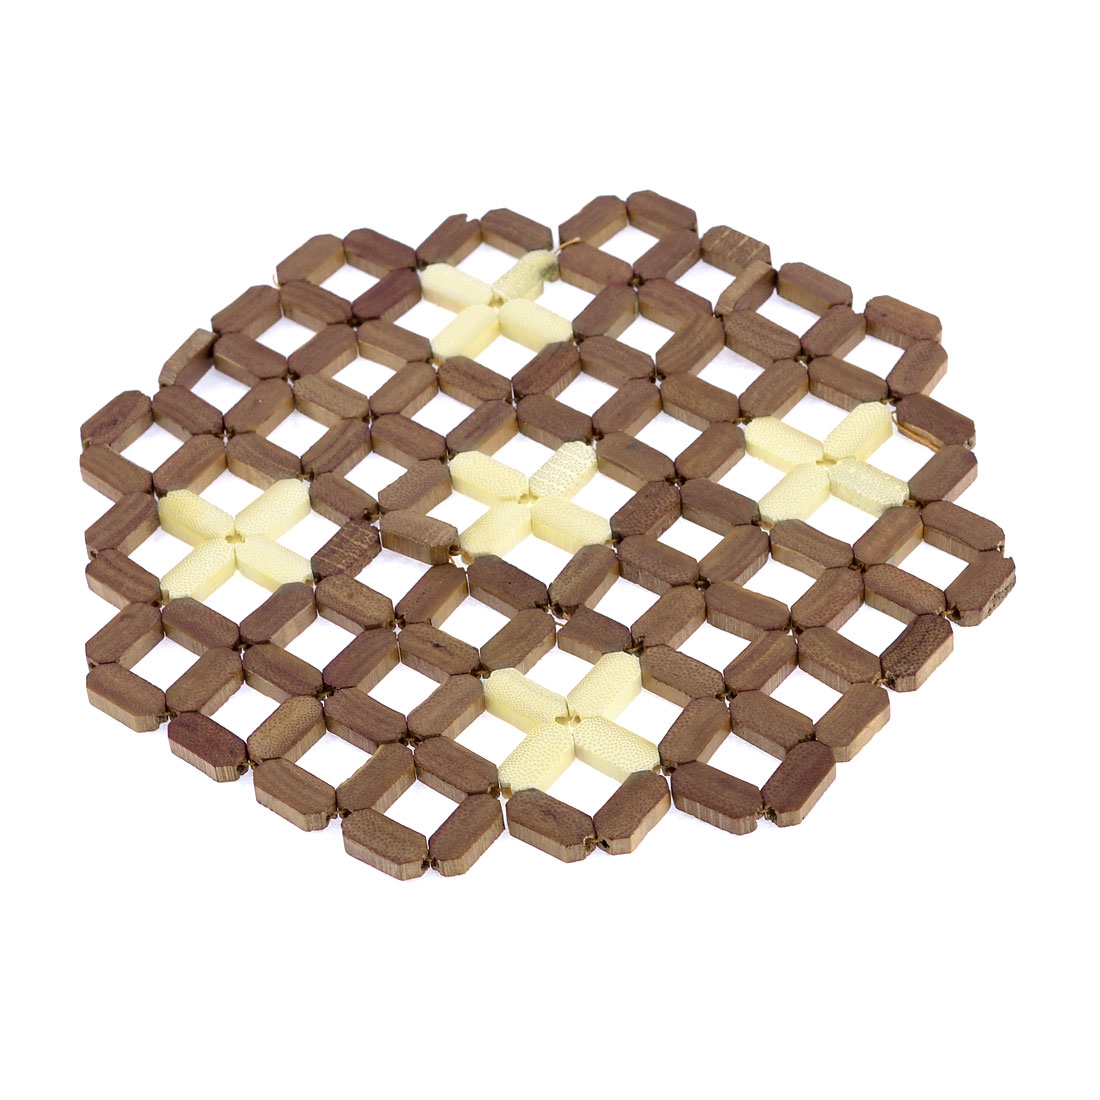 19cm x 19cm Square Bamboo Pot Holder Dish Hot Pad Mat Beige Brown